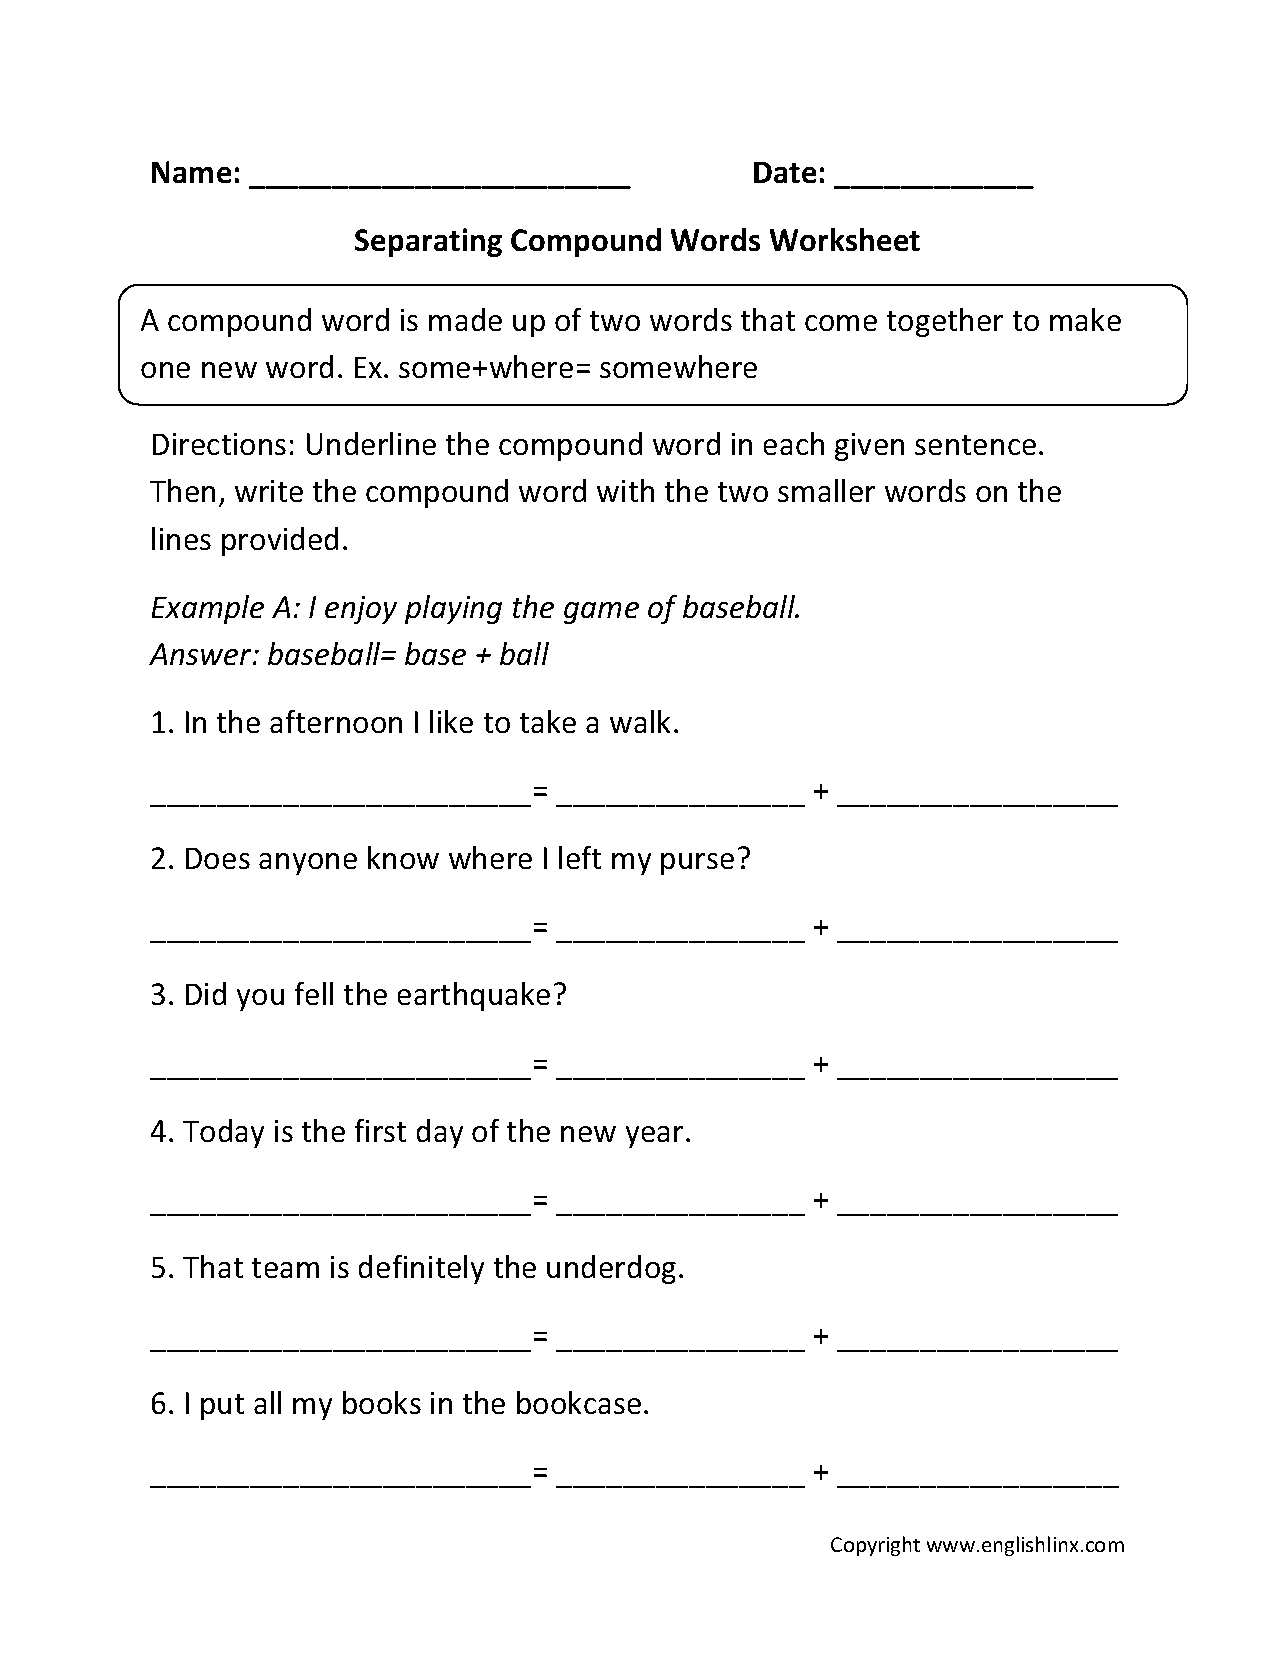 Worksheet Compound Word Activity englishlinx com compound words worksheets separating worksheets